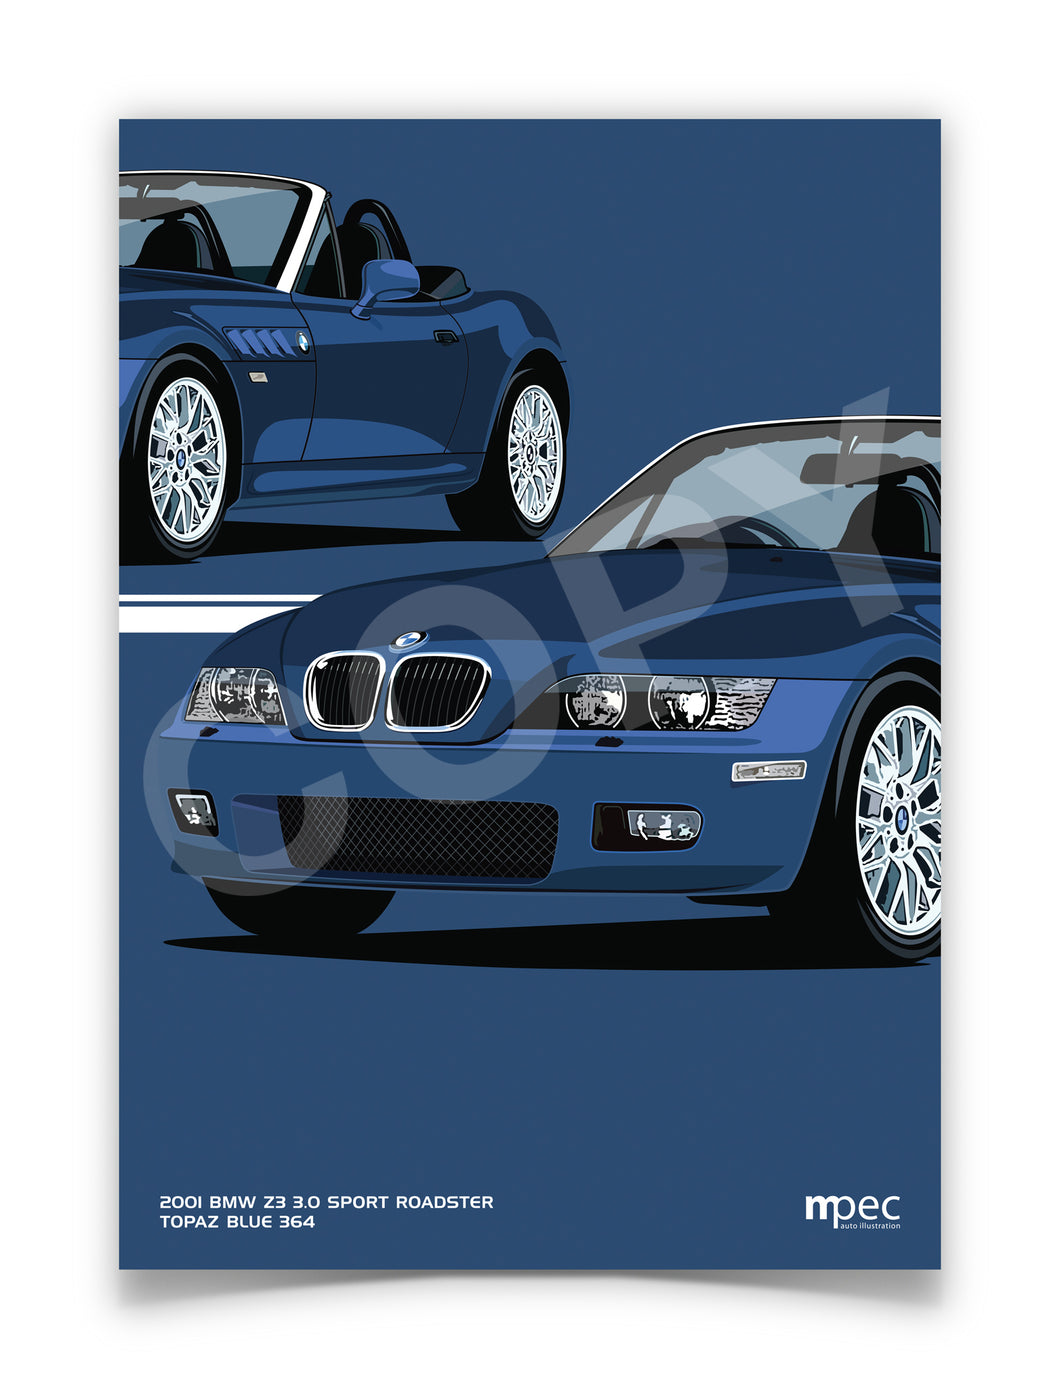 Illustration 2001 BMW Z3 3.0 Sport Roadster Topaz Blue 364